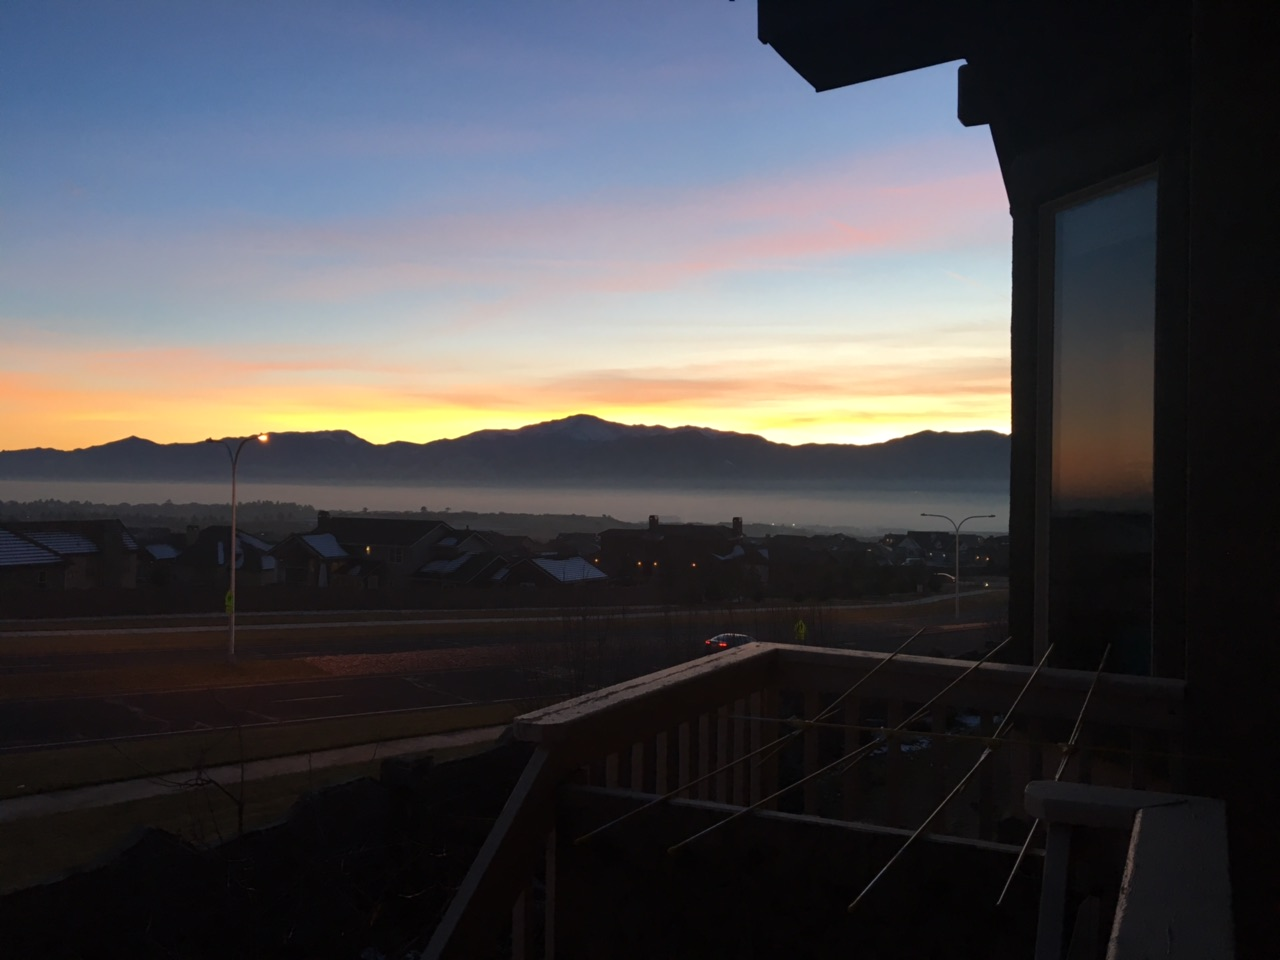 Another beautiful sunset in Colorado!